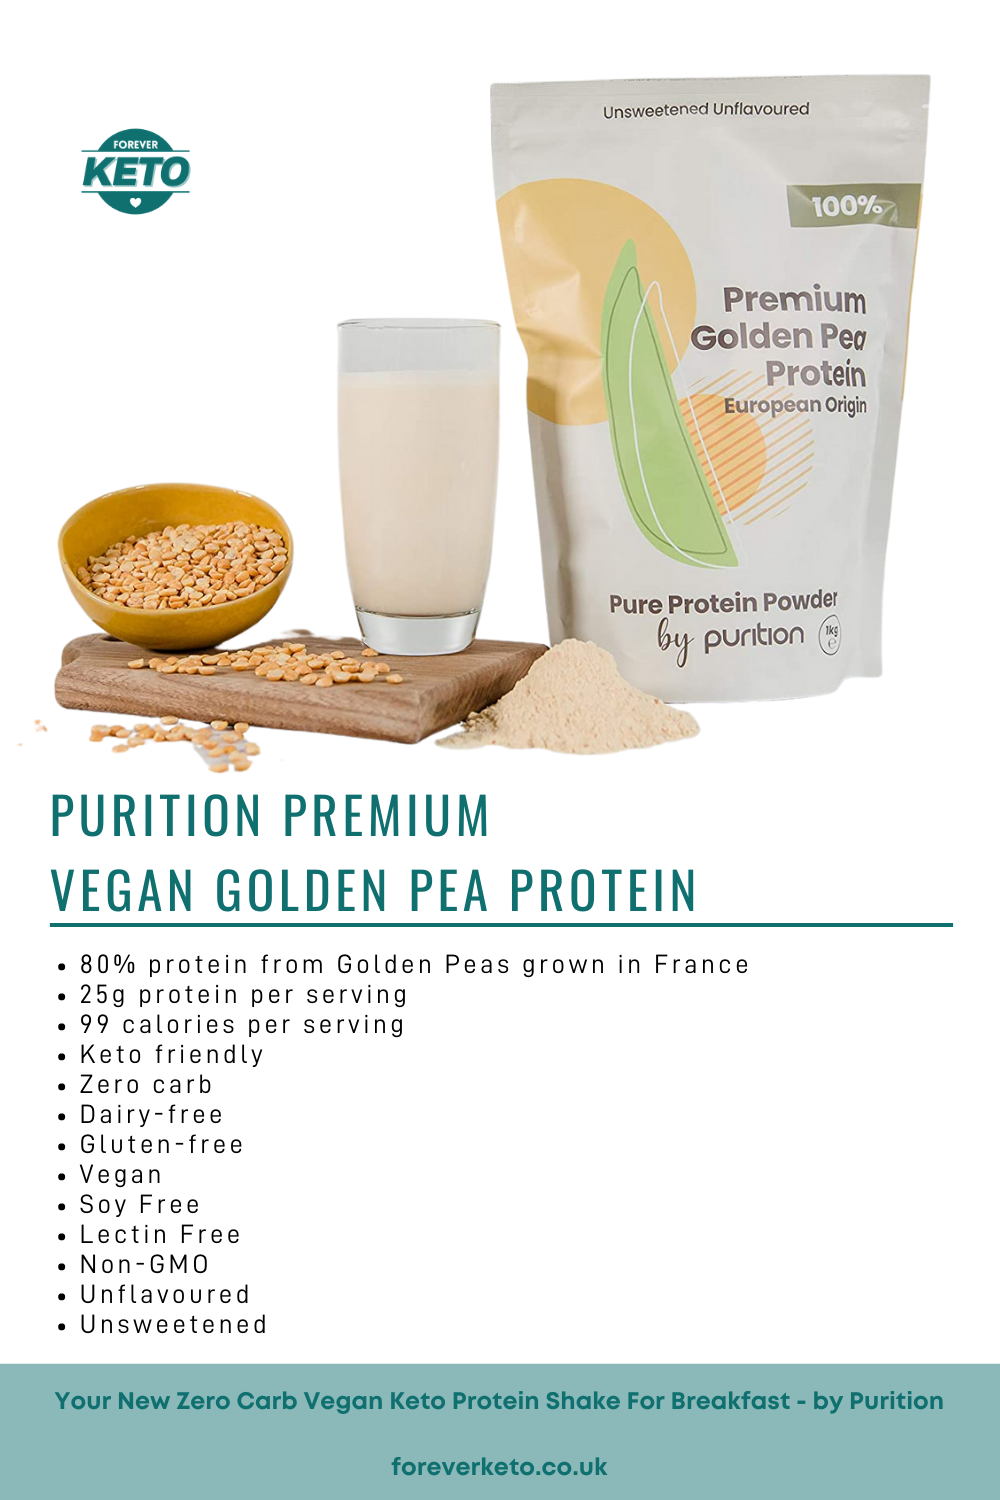 Looking for a Zero Carb Vegan Keto Protein Shake For Breakfast?